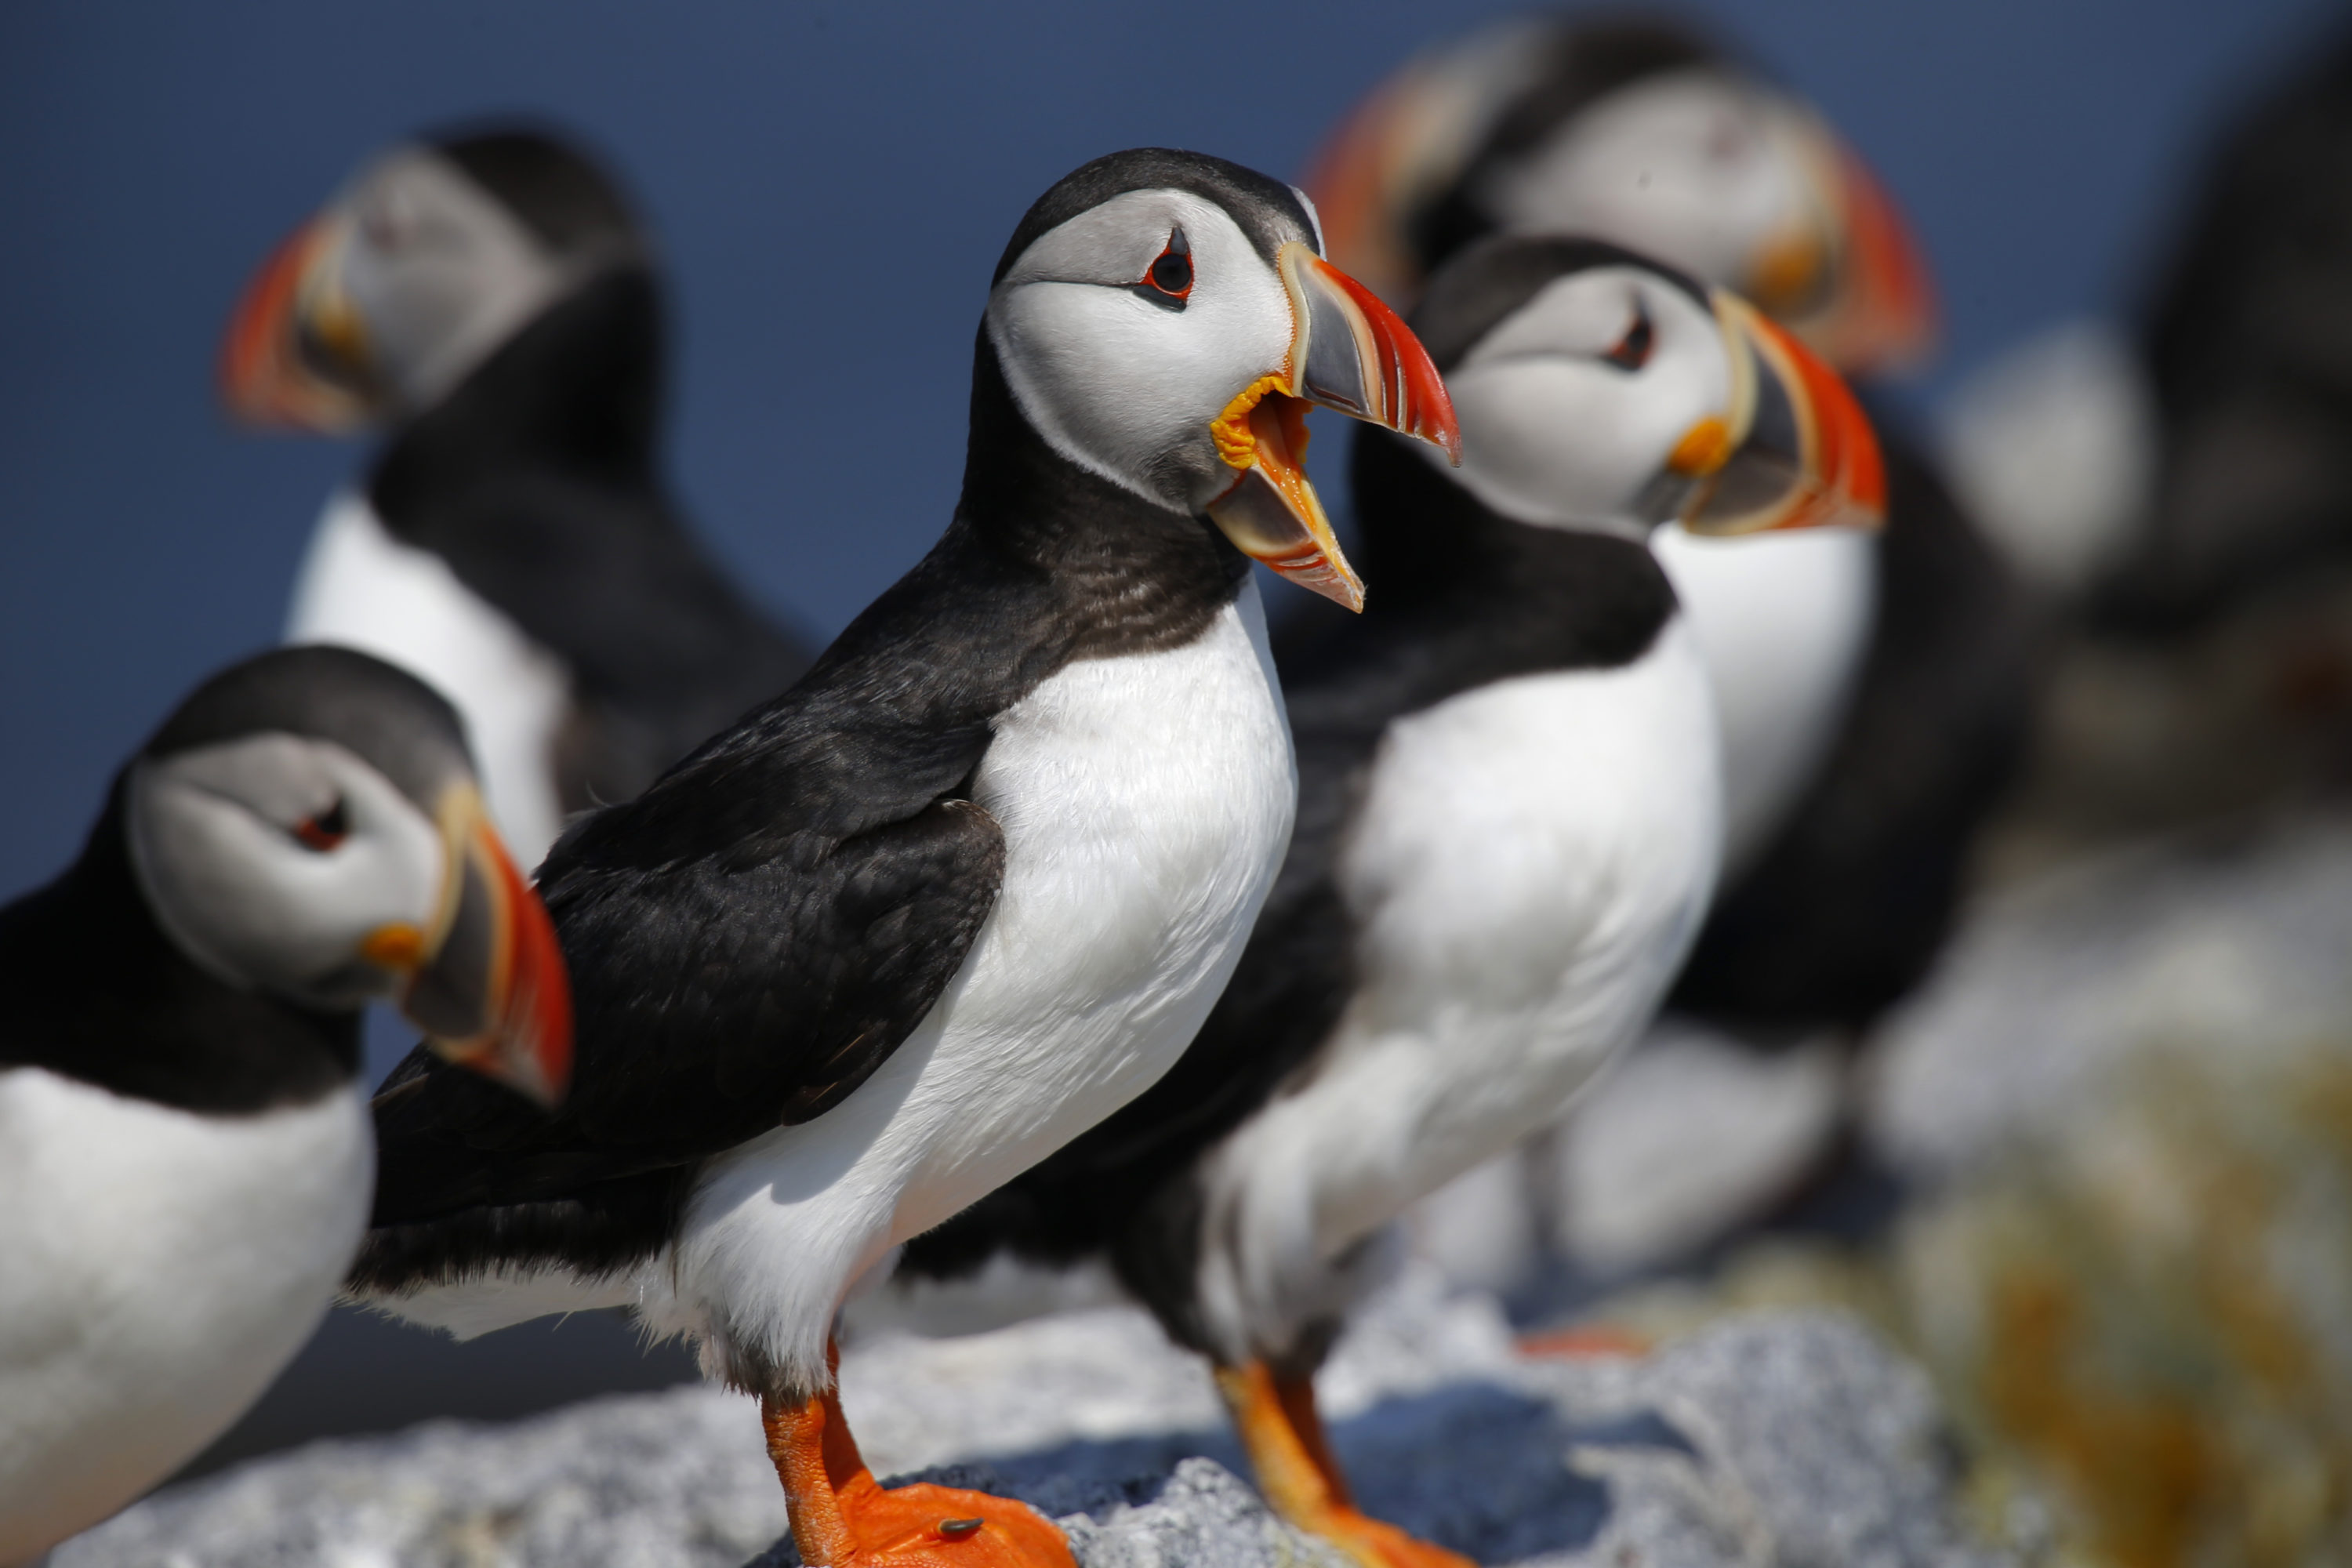 Atlantic puffins congregate on Eastern Egg Rock, a small island off the coast of Maine. Decades of conservation work have brought the state's population of the birds to about 1,300 pairs that nest on Maine islands. (Robert F. Bukaty/AP)